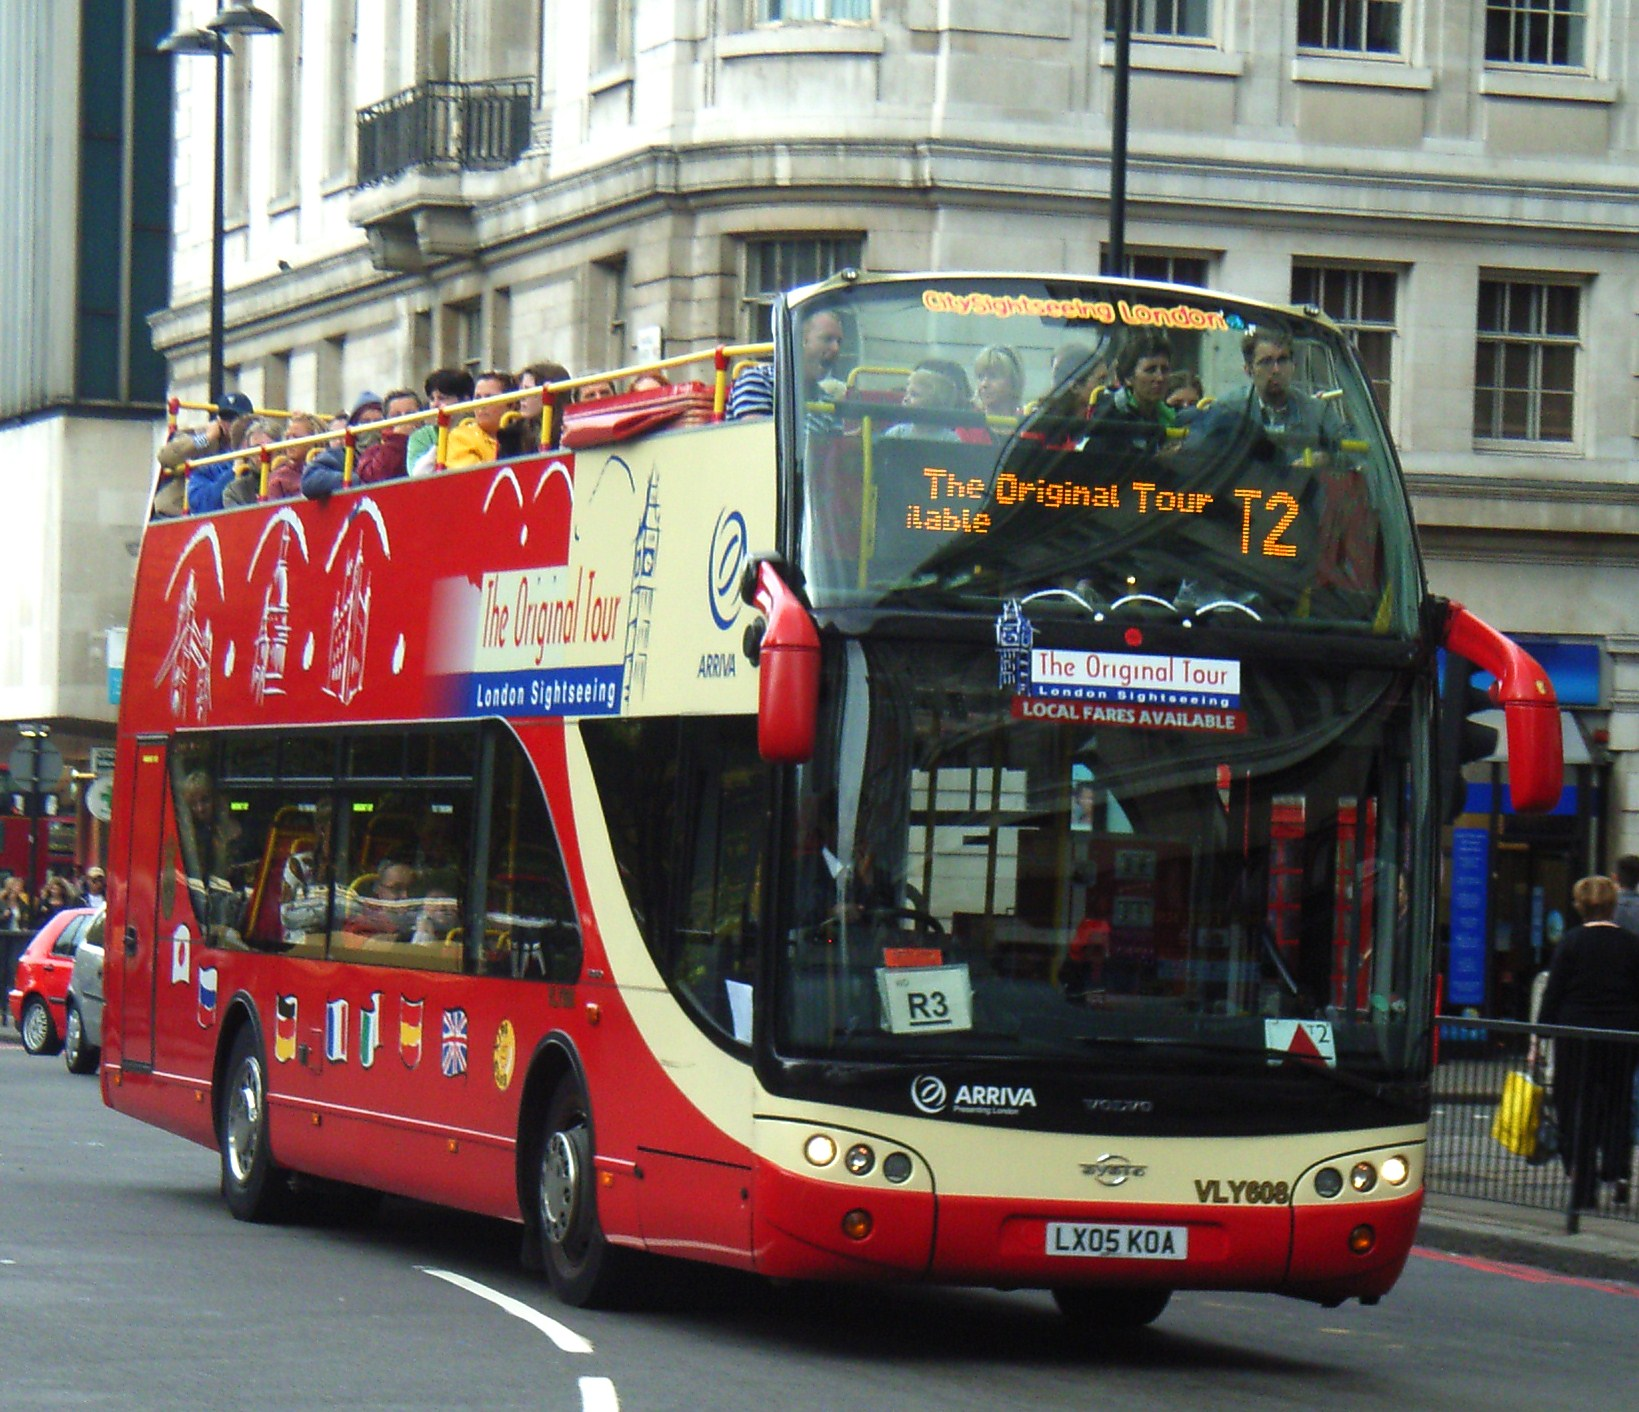 10 Top Tourist Attractions In London